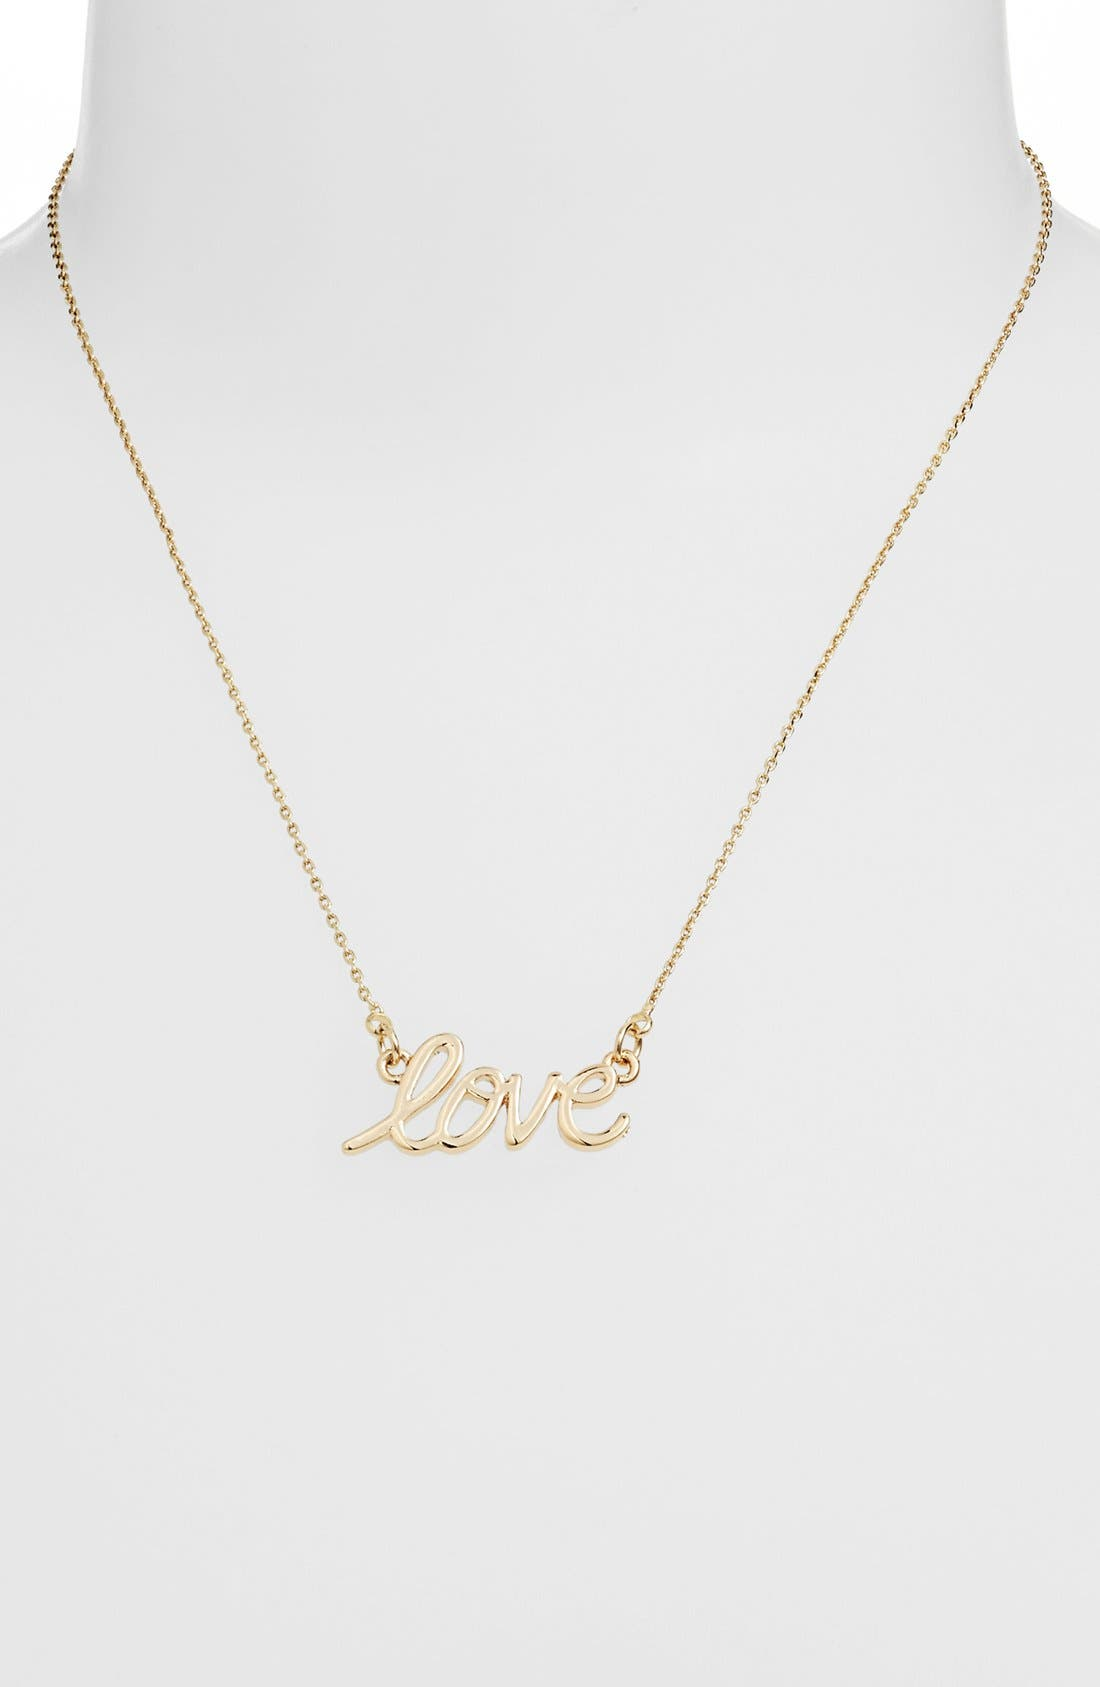 Alternate Image 1 Selected - Stephan & Co. 'Love' Script Necklace (Juniors)